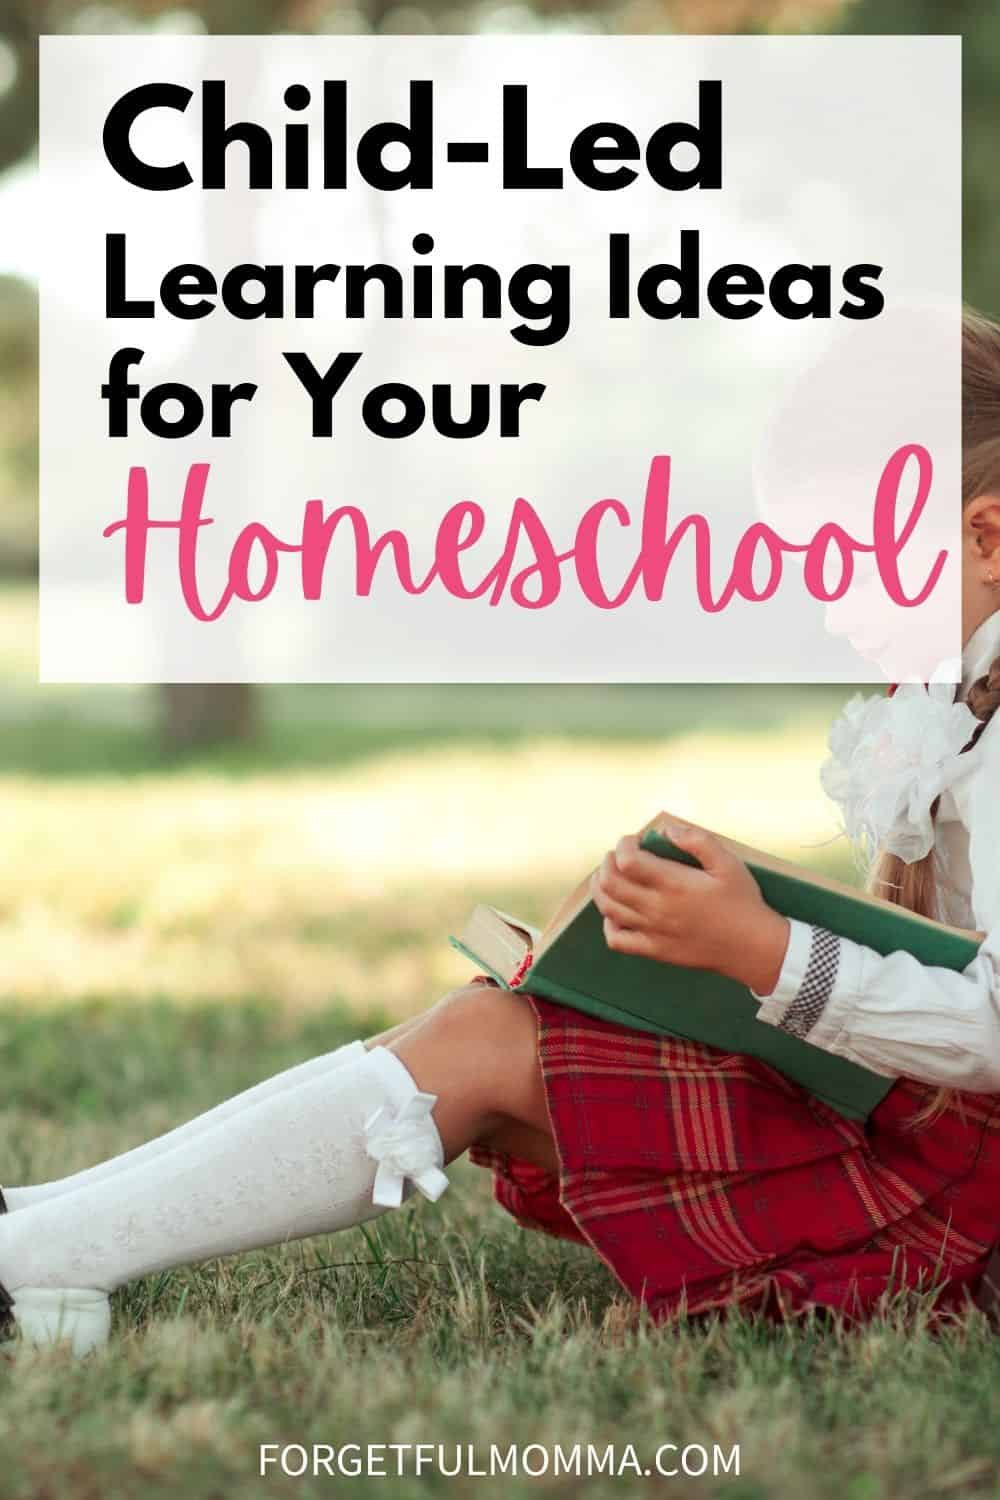 Child-Led Learning Ideas for your Homeschool